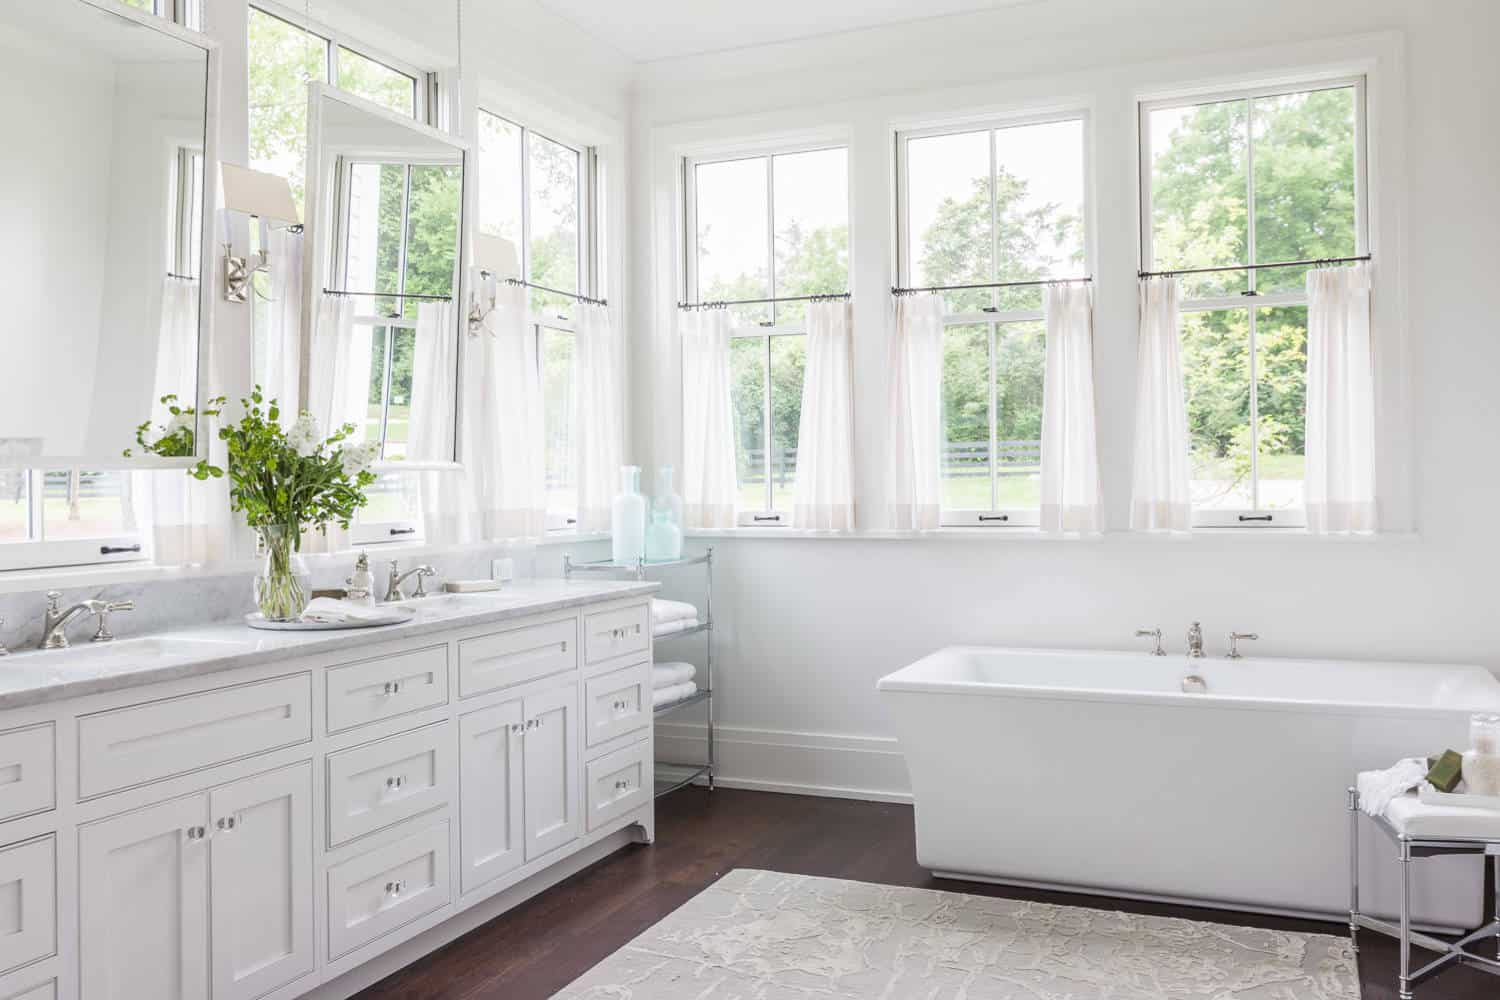 28 Bathroom Window Curtain Ideas For Style And Privacy 2020 Edition